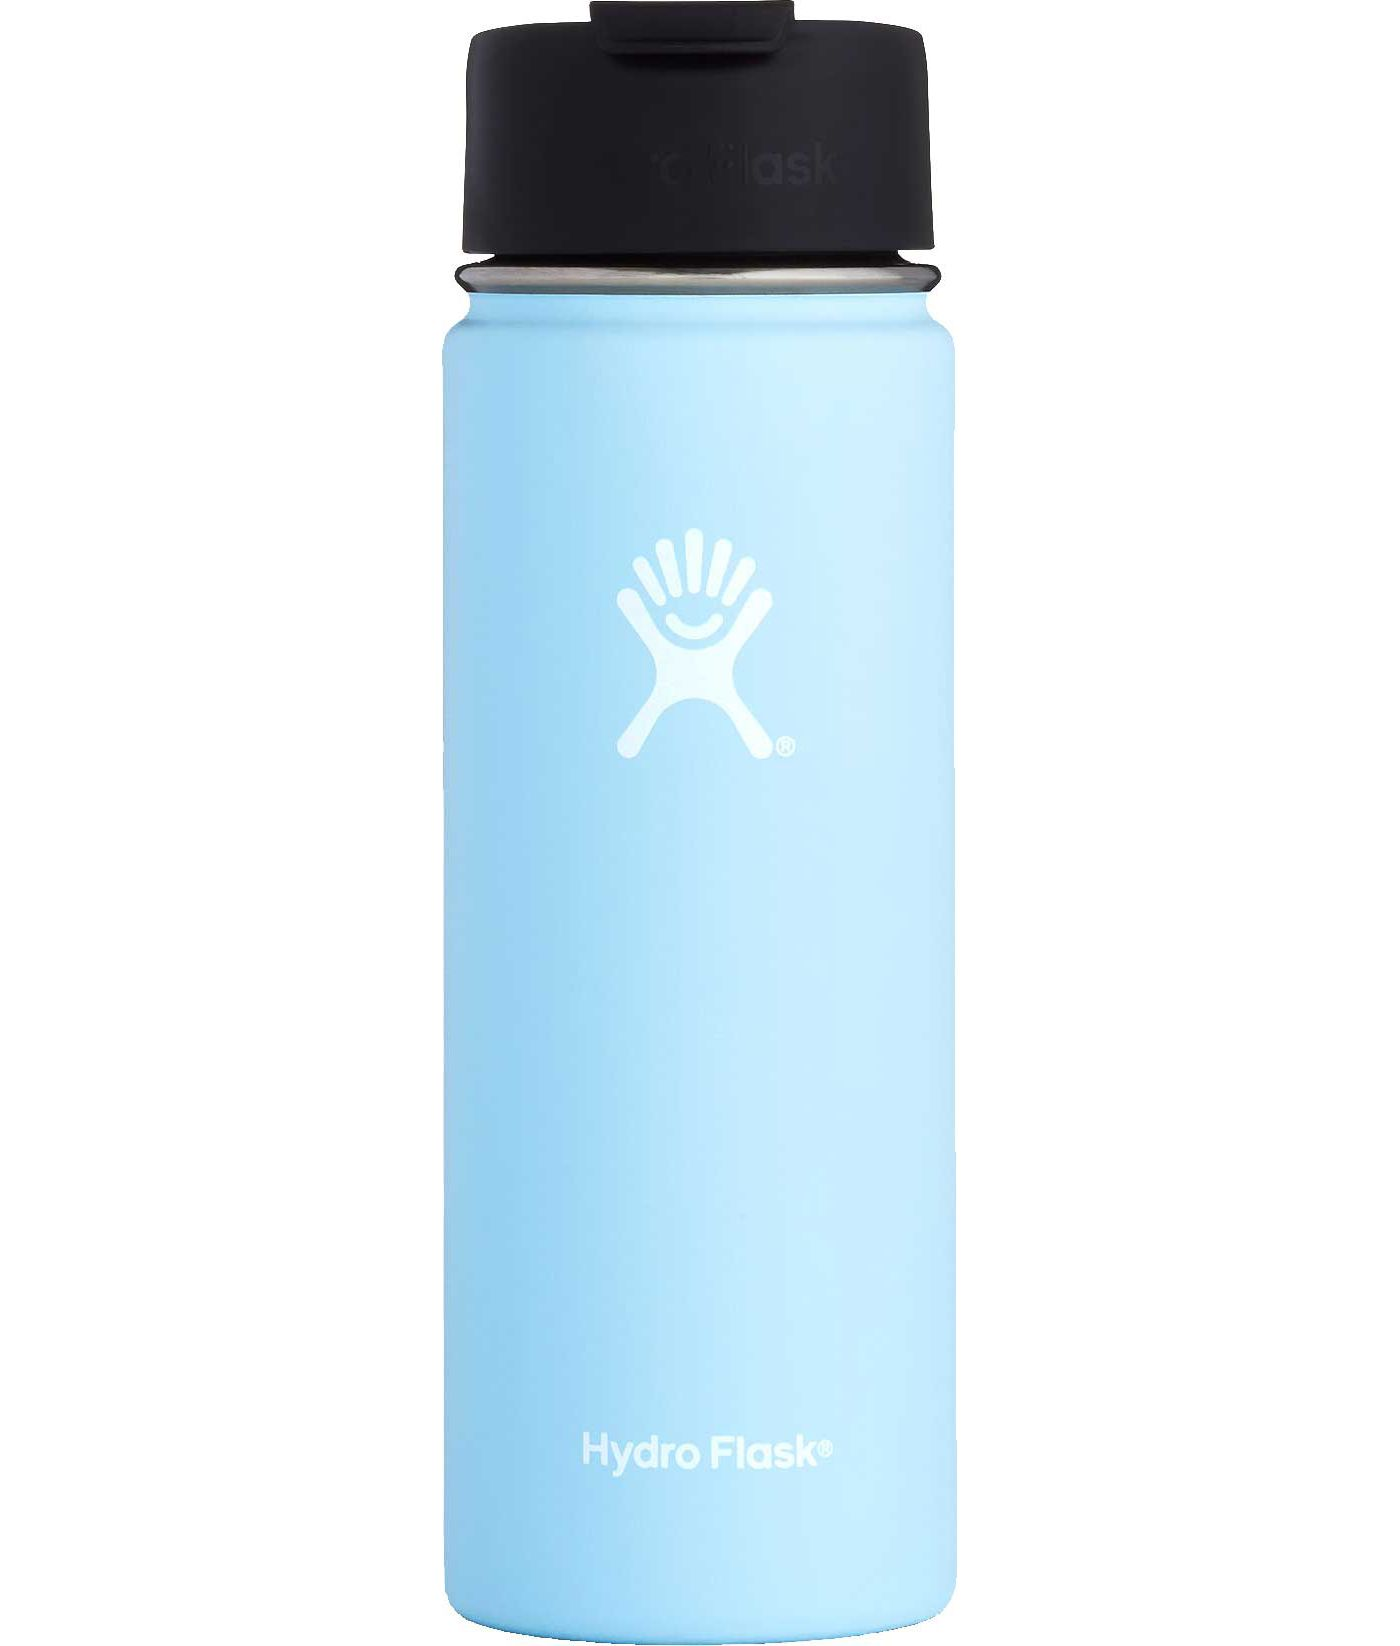 Hydro Flask Flip Top 20 oz. Bottle